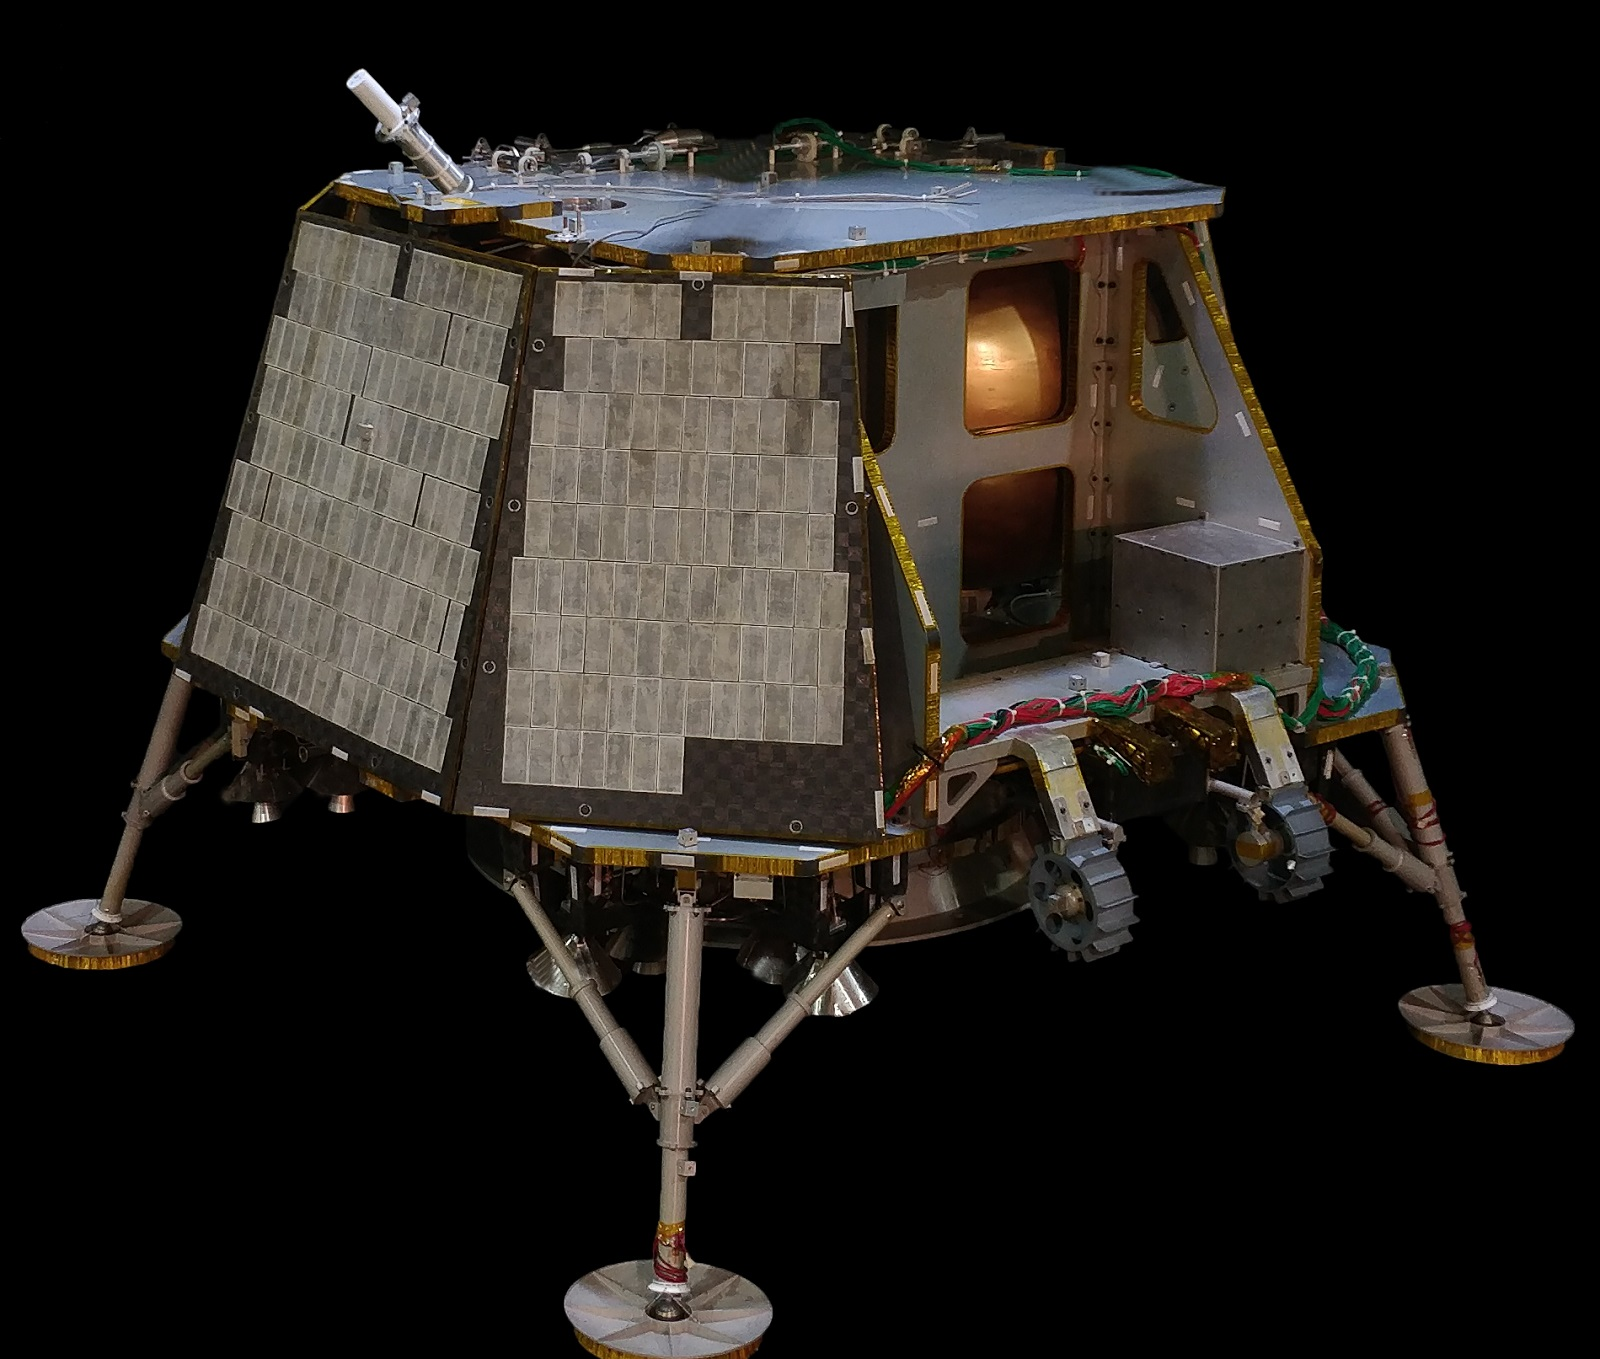 nasa commercial lunar payload services - HD1600×1359